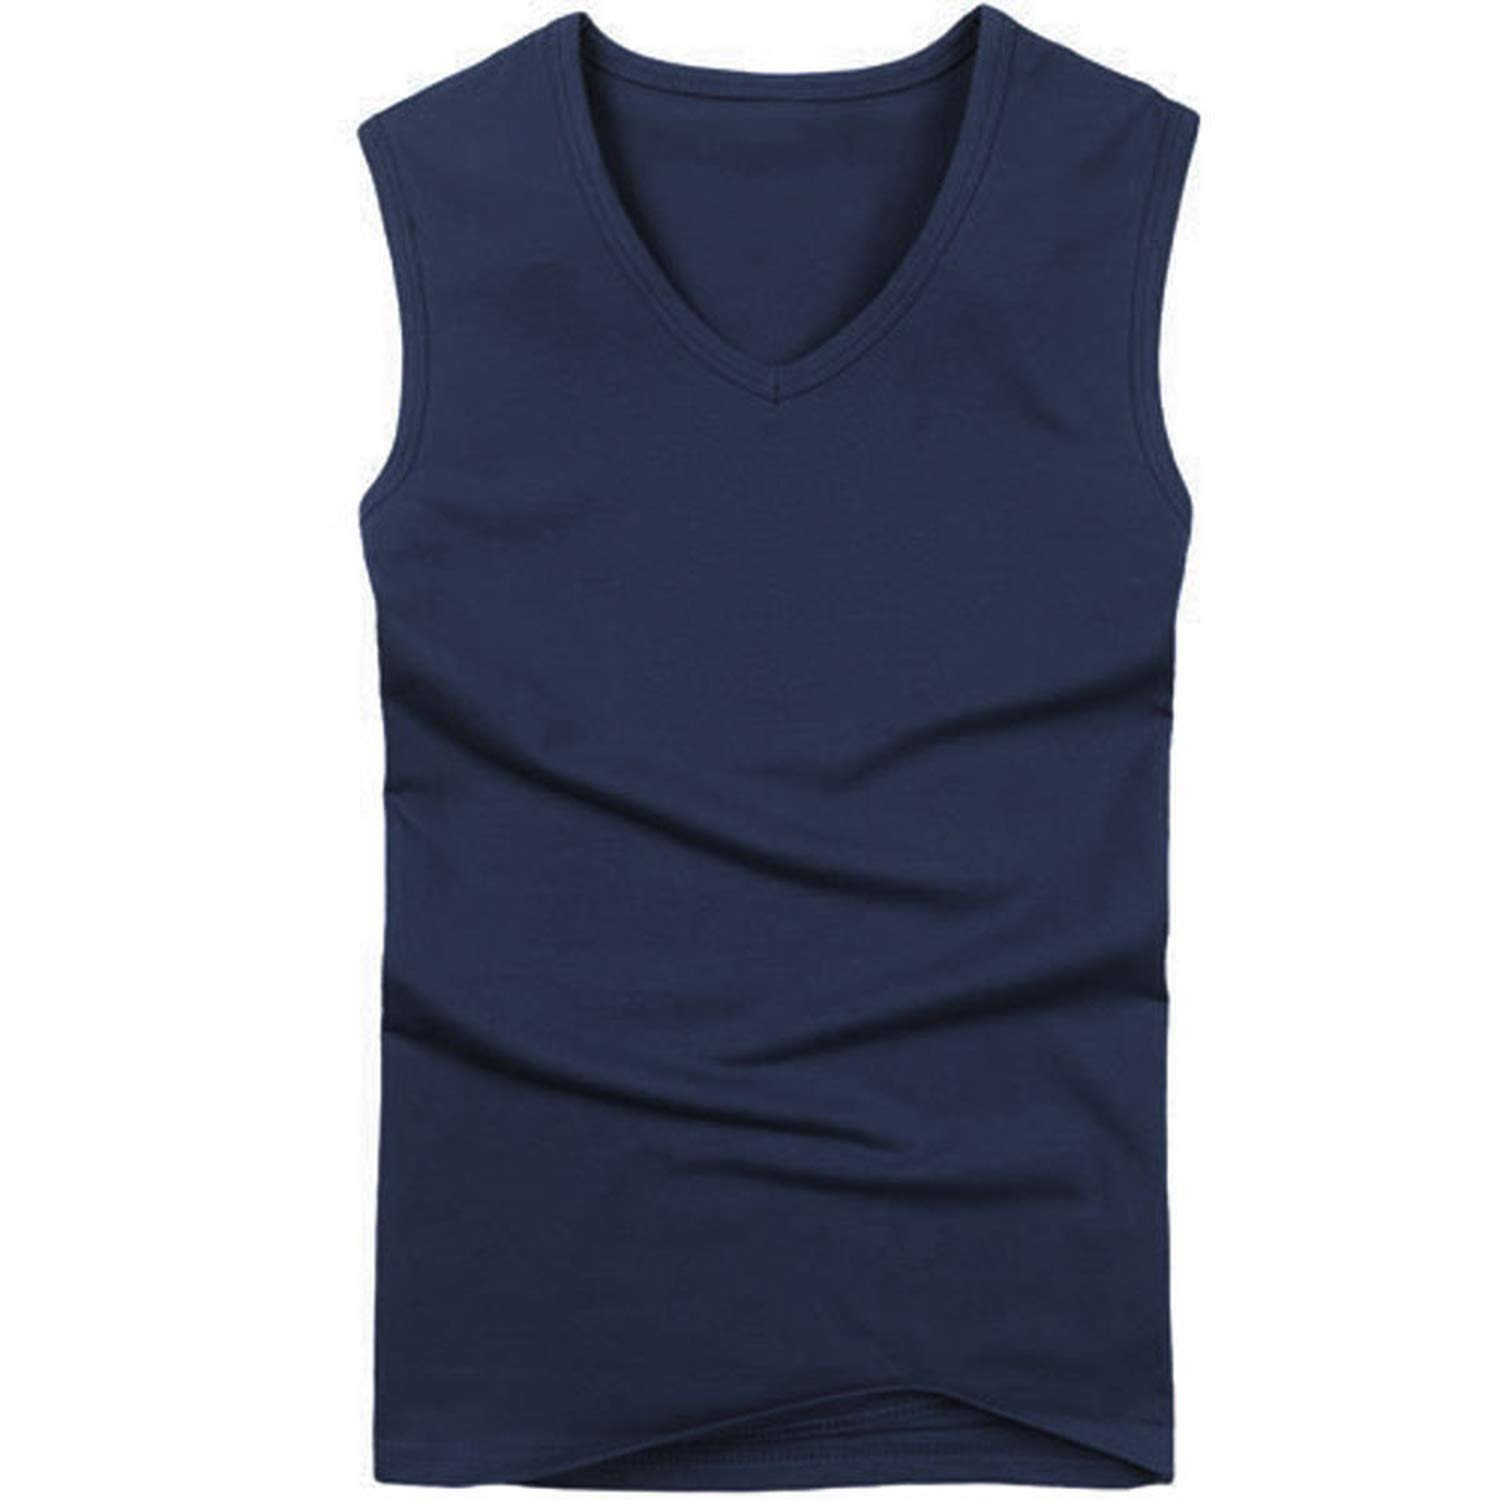 Fx-Hottest-tank-top 2019 Men Boy Body Compression Base Layer Sleeveless Summer Vest